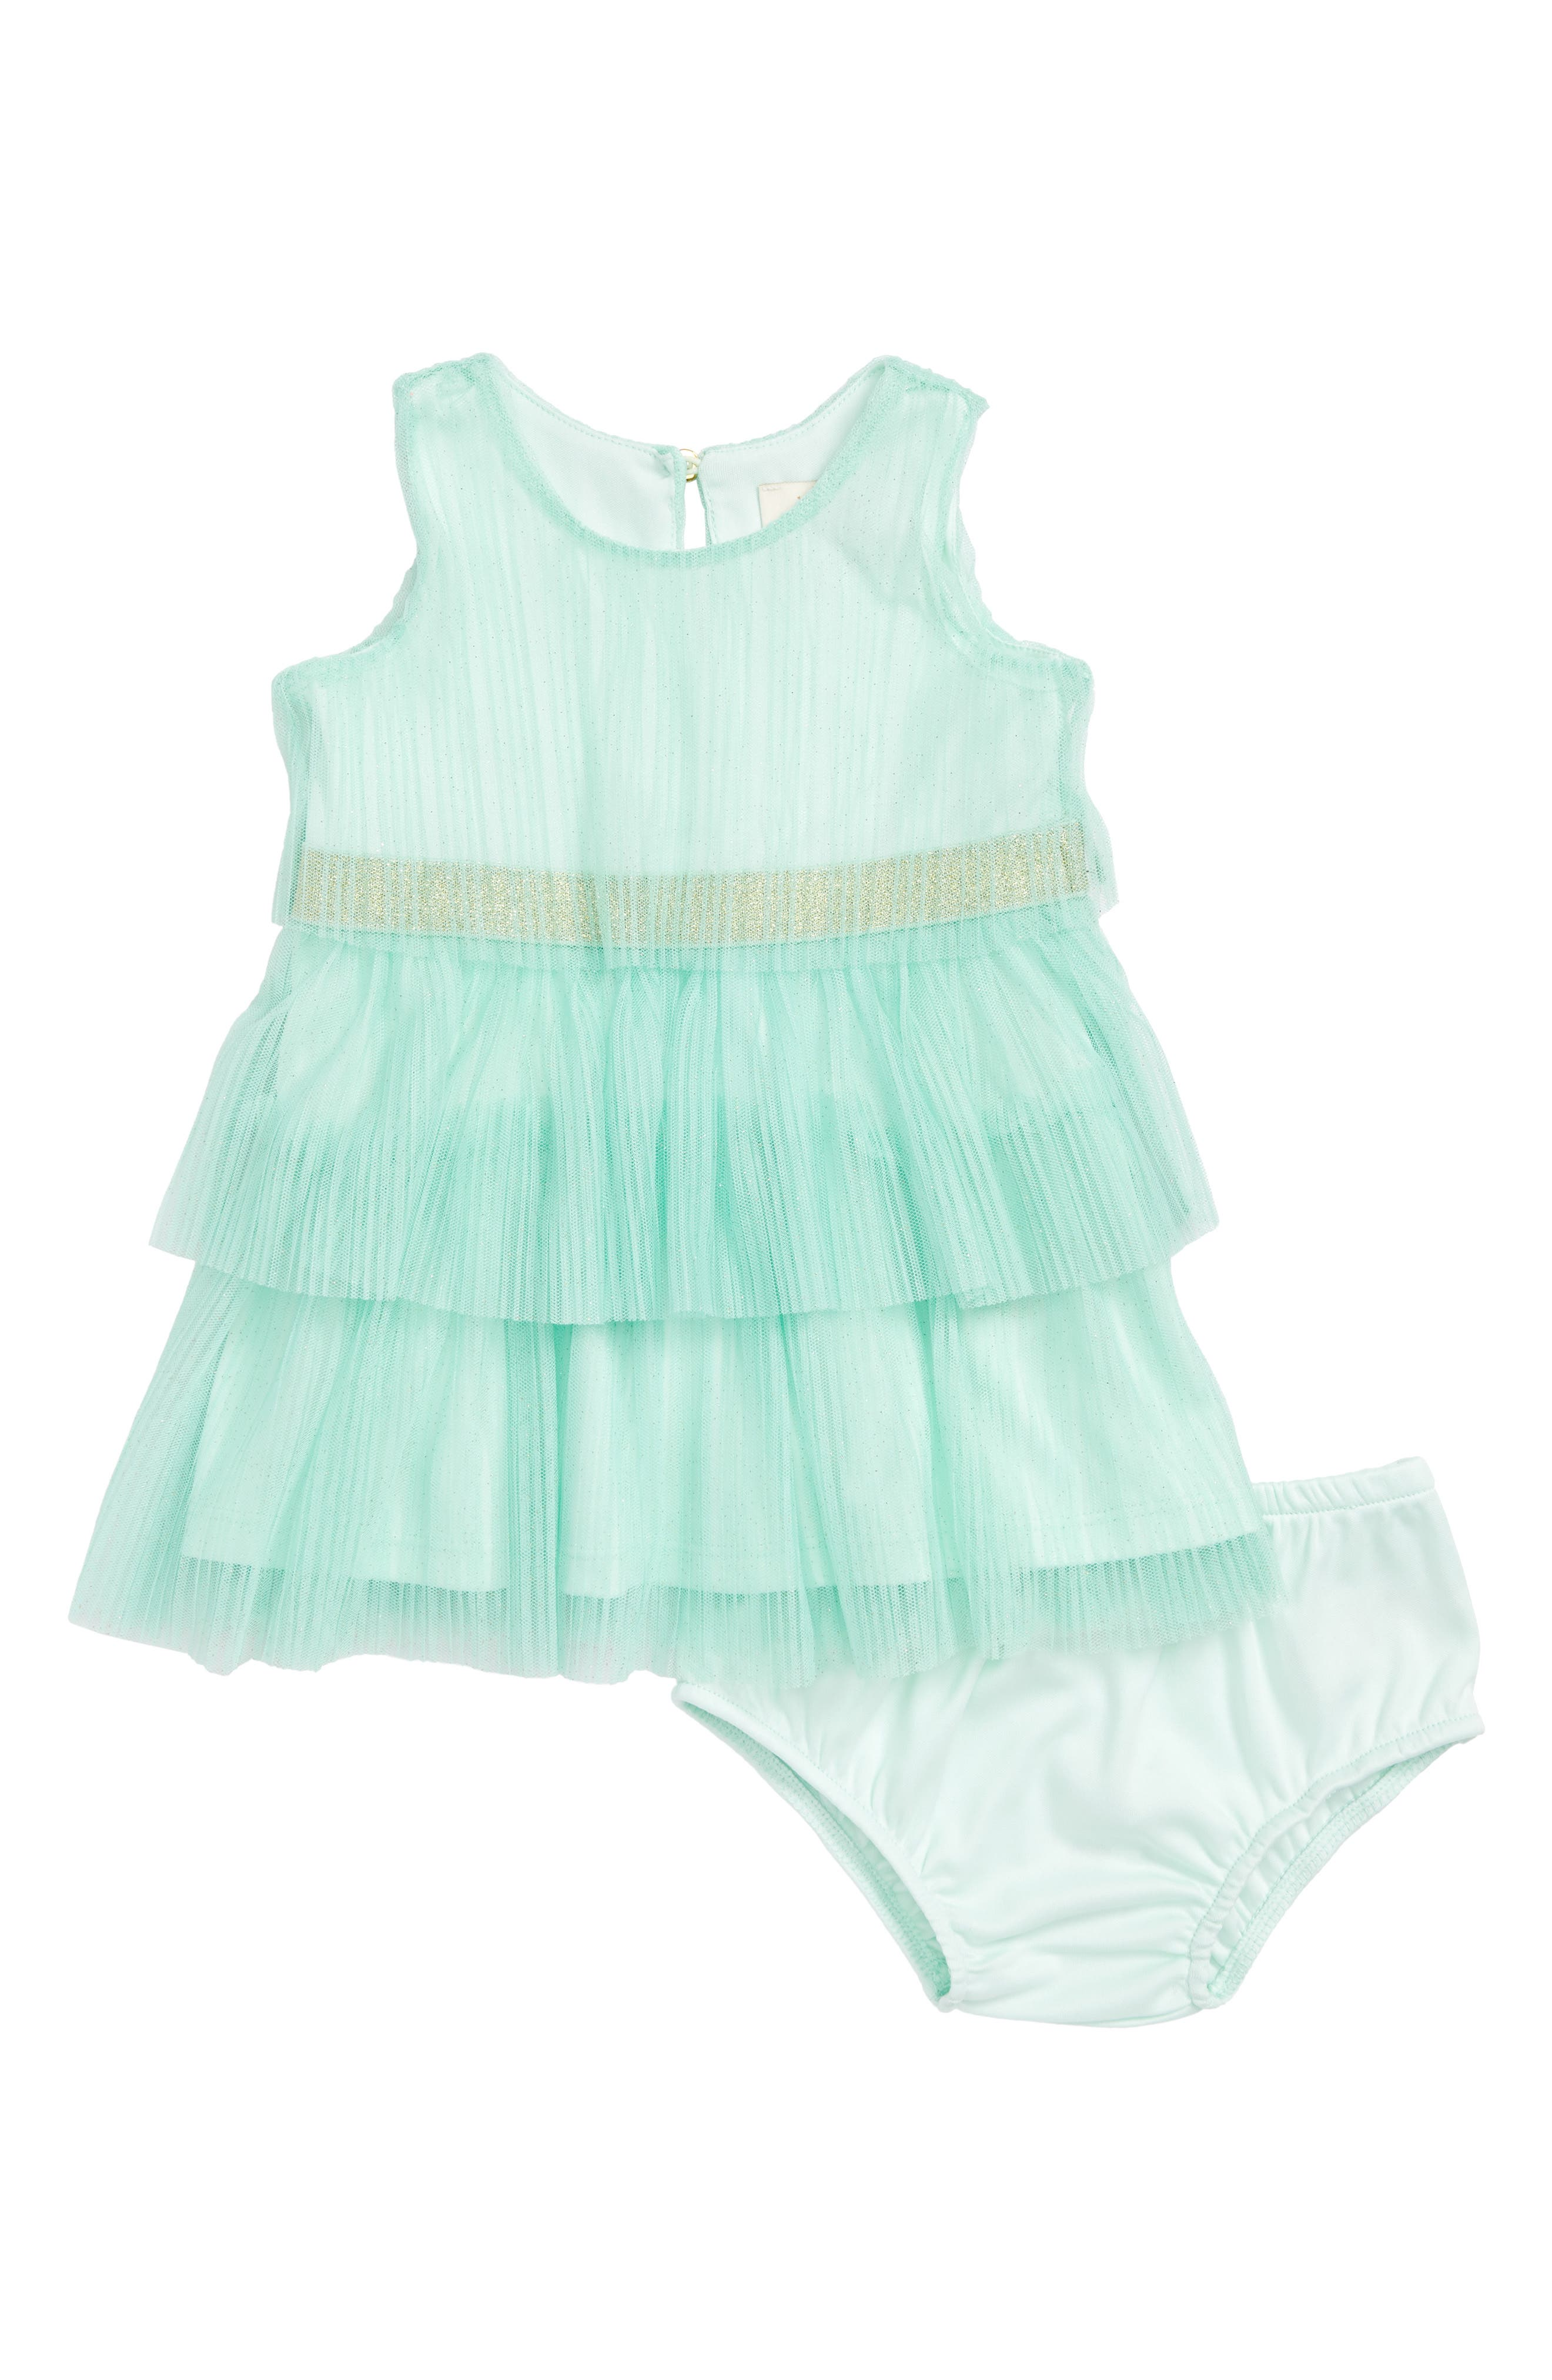 pleated tulle dress,                         Main,                         color, 330